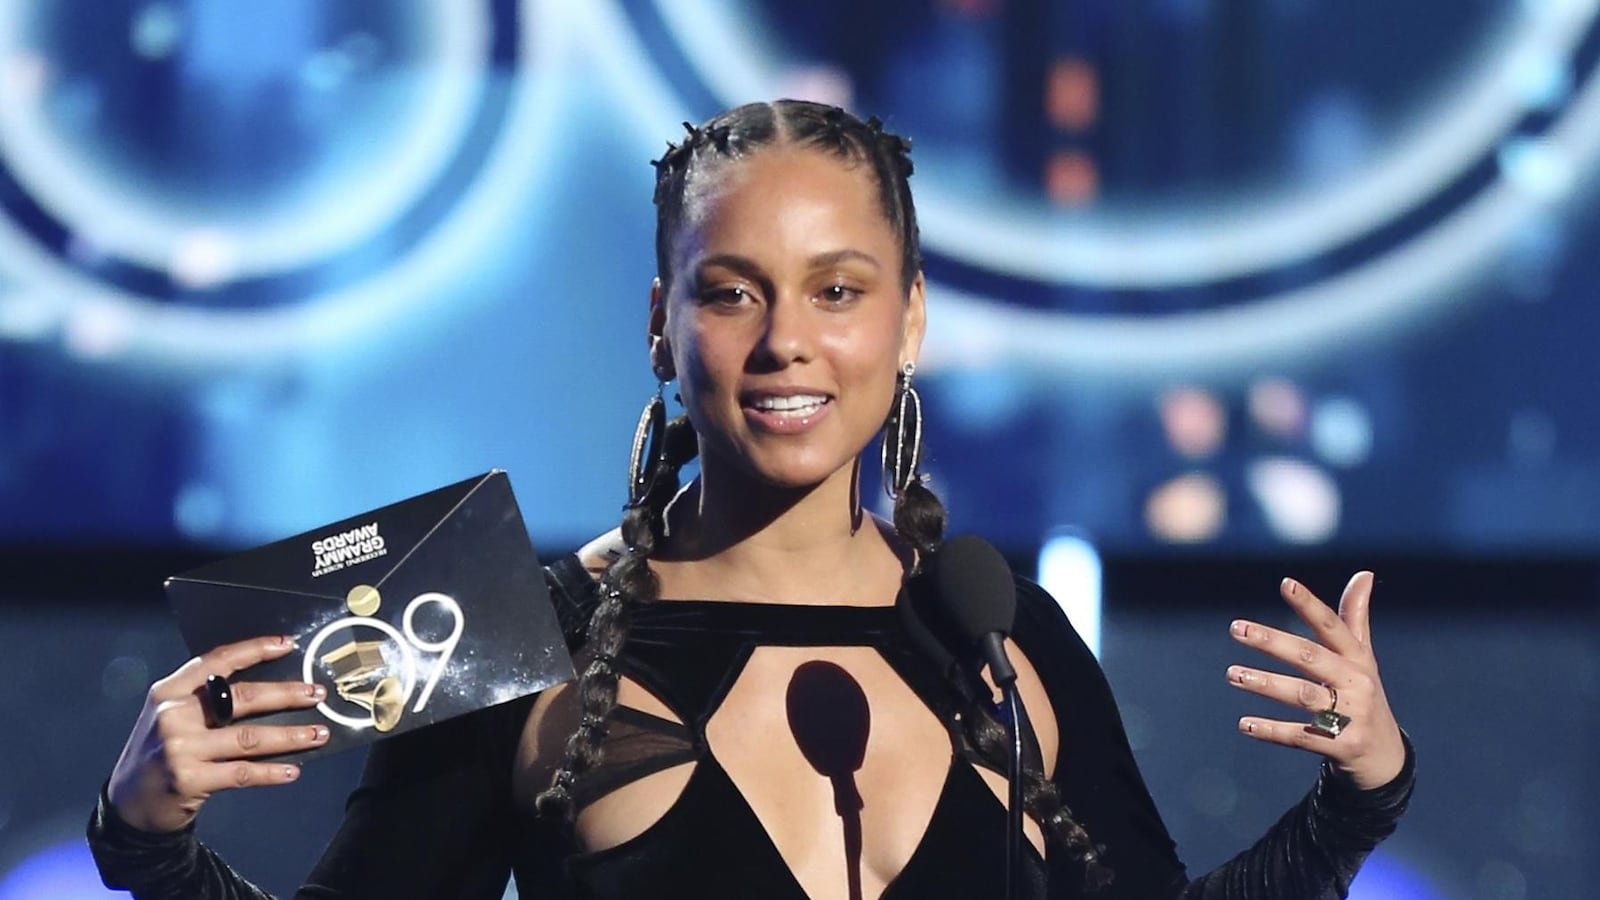 Grammy Awards : Alicia Keys remplace James Corden à la présentation